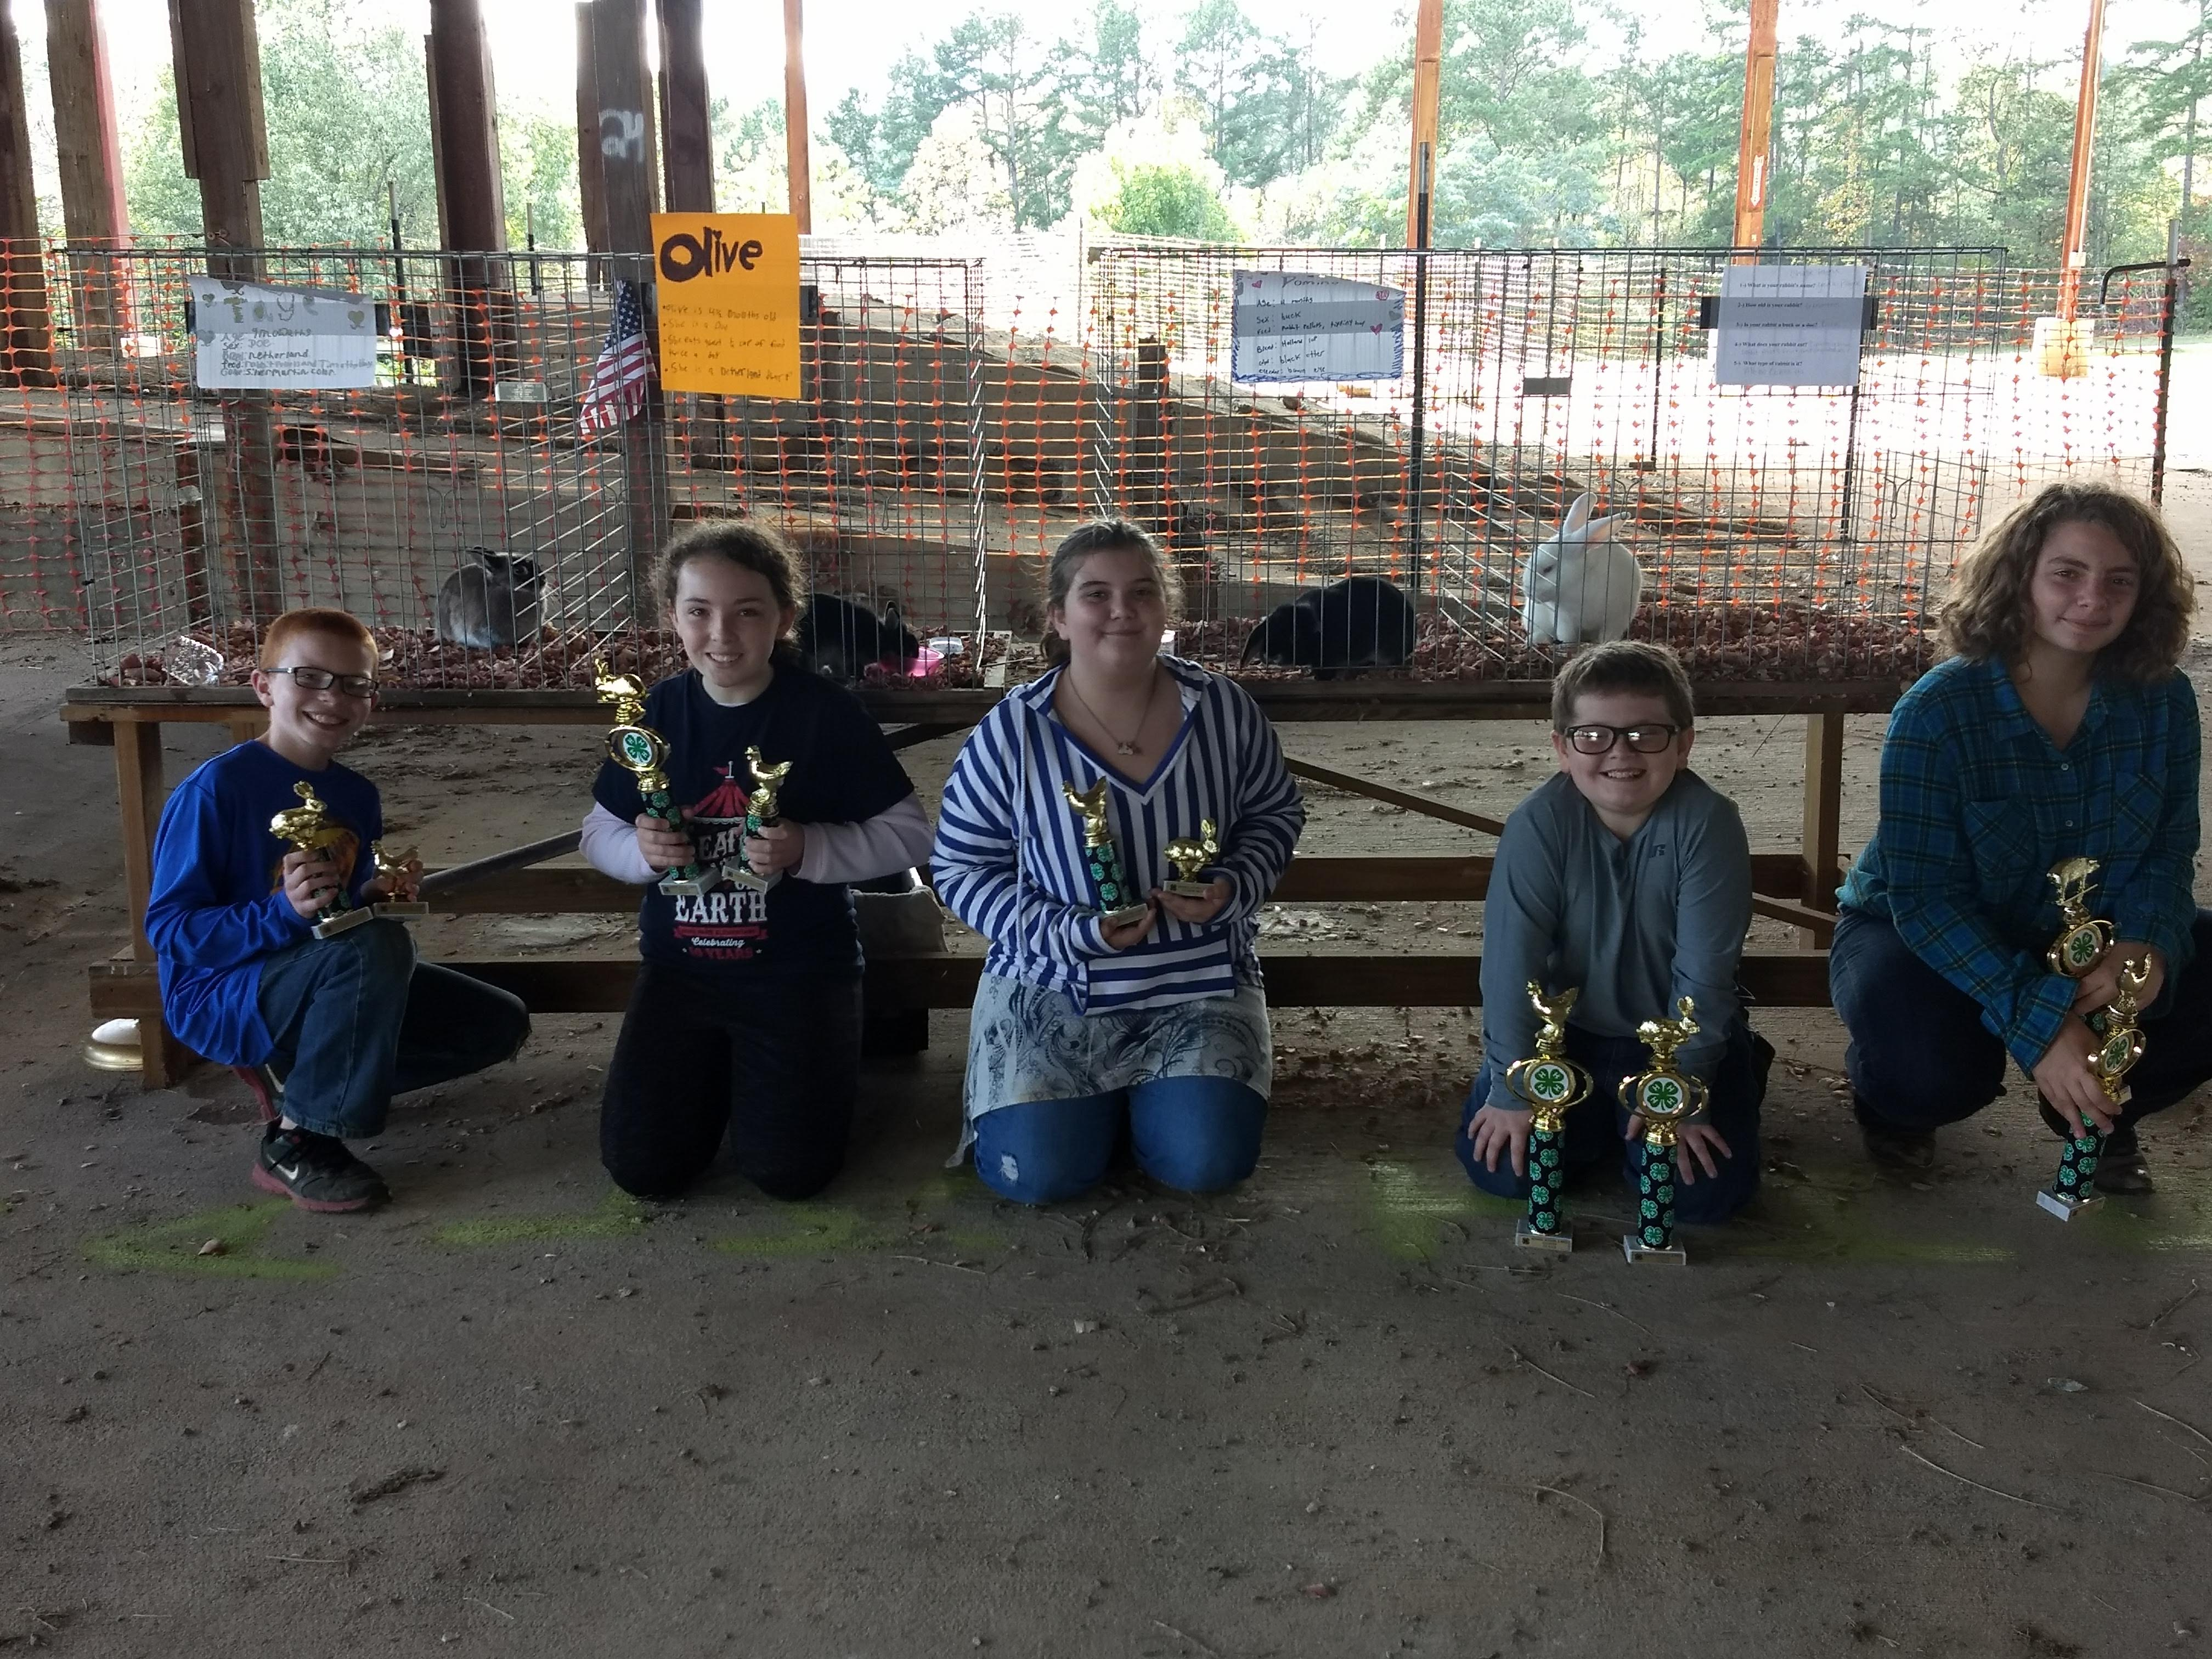 Image of kids with trophies